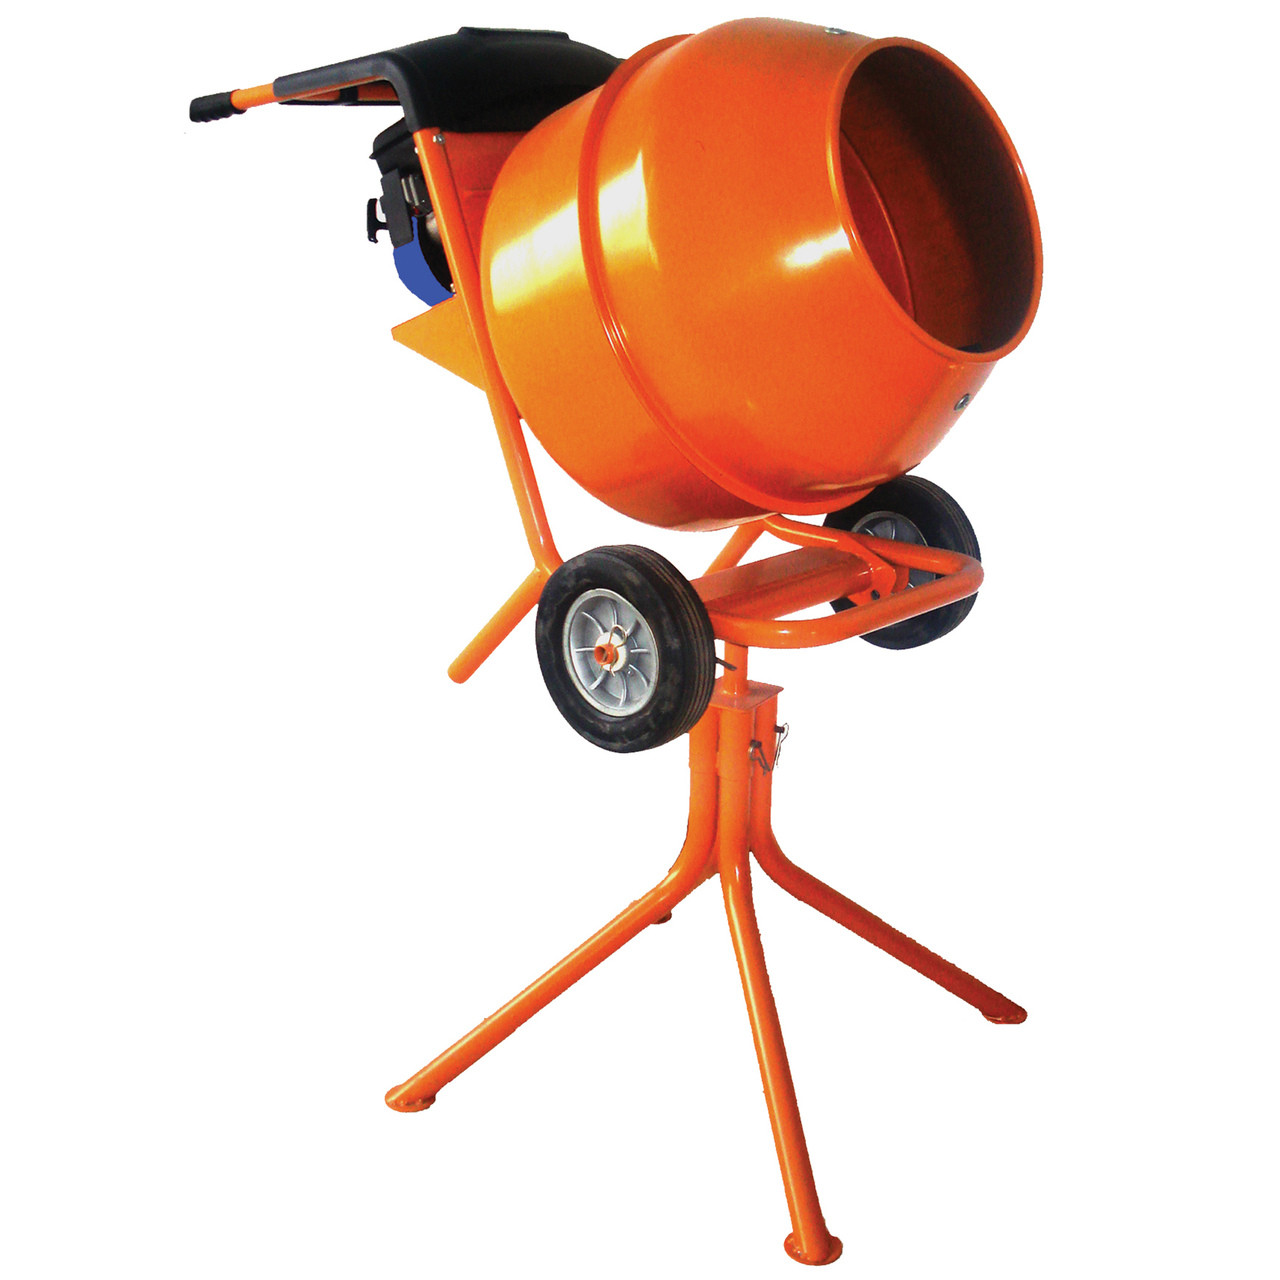 Proplus petrol cement mixer 2 4hp engine for Cement mixer motor for sale